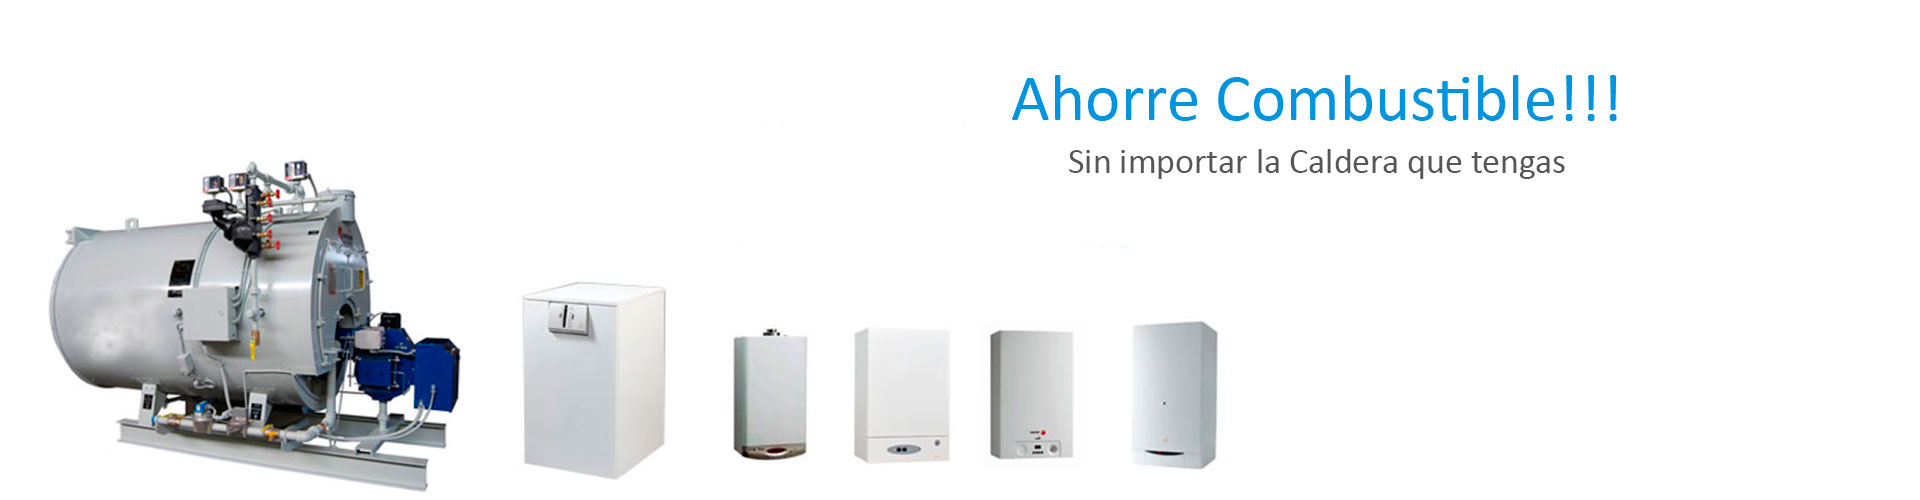 Ahorre combustible